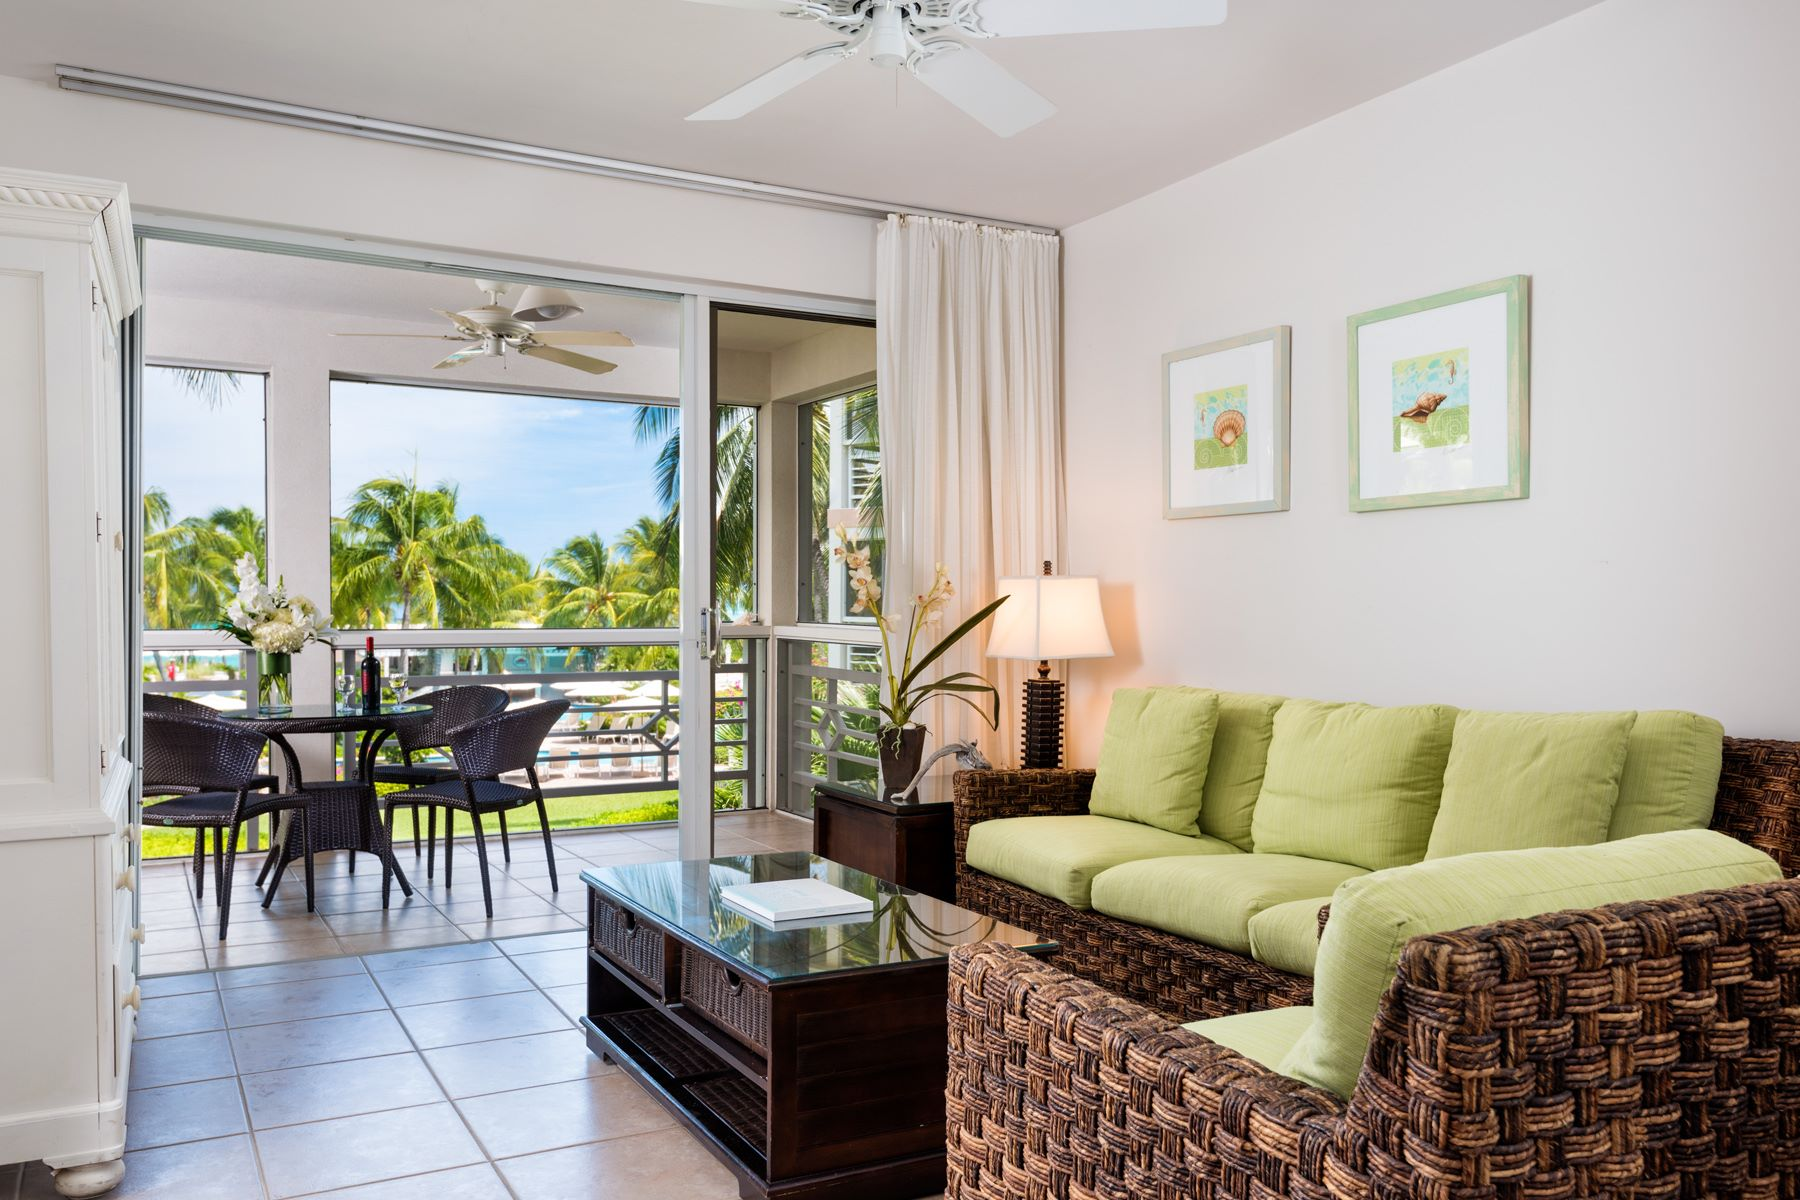 Condominium for Sale at Ocean Club West 726 Oceanfront Grace Bay, Providenciales, TCI Turks And Caicos Islands